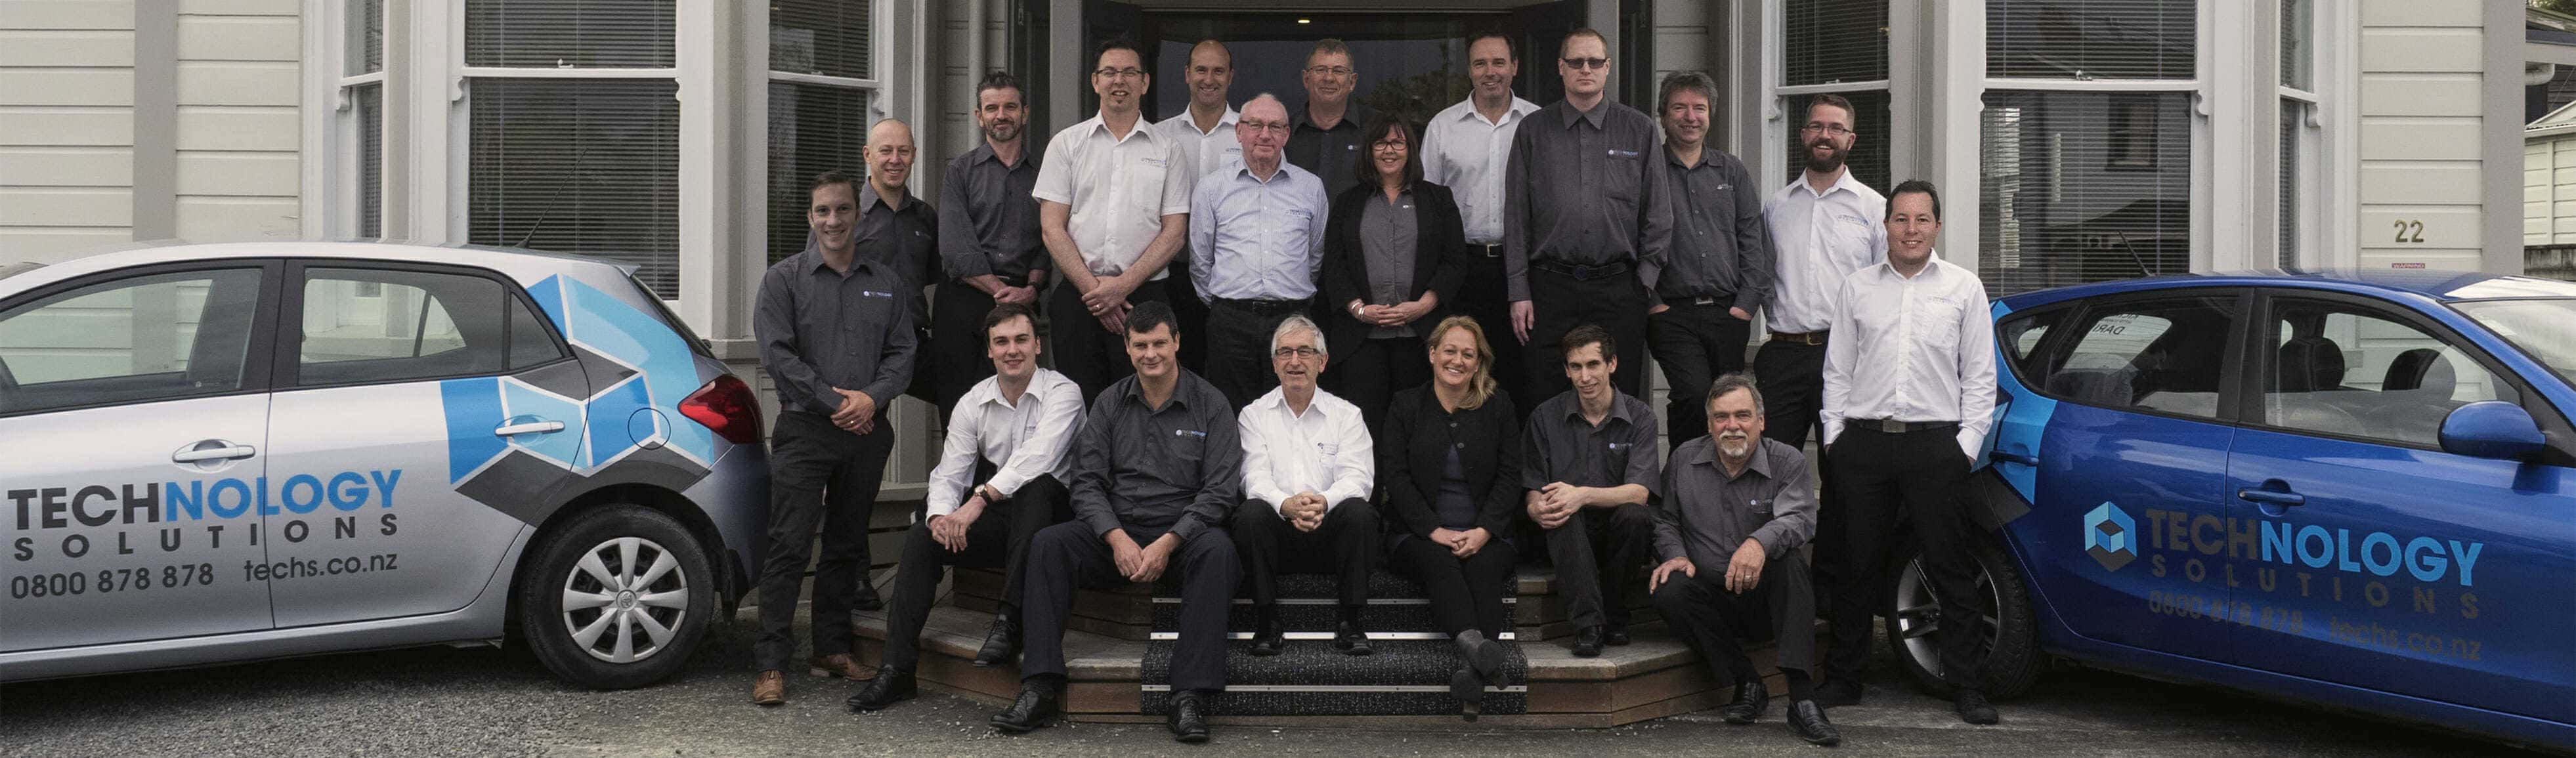 Technology Solutions Team